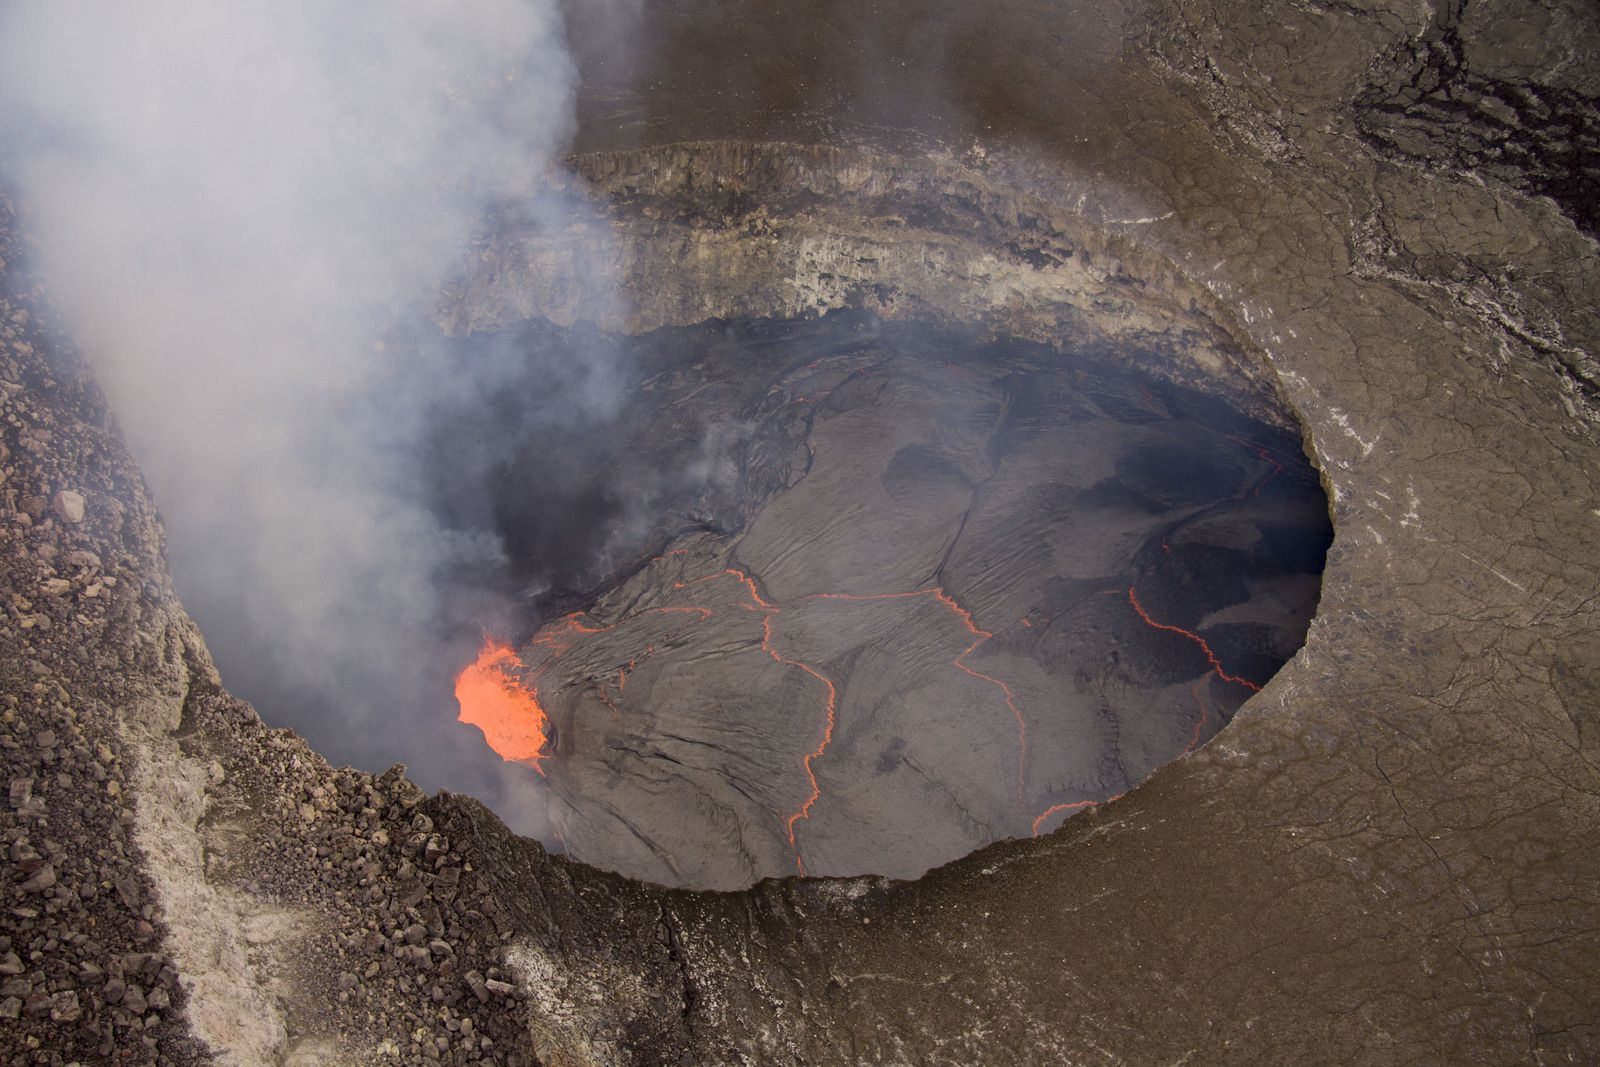 Kilauea - The lake level is 50 meters below the Overlook crater rim on 17.10.2012 - photo HVO-USGS